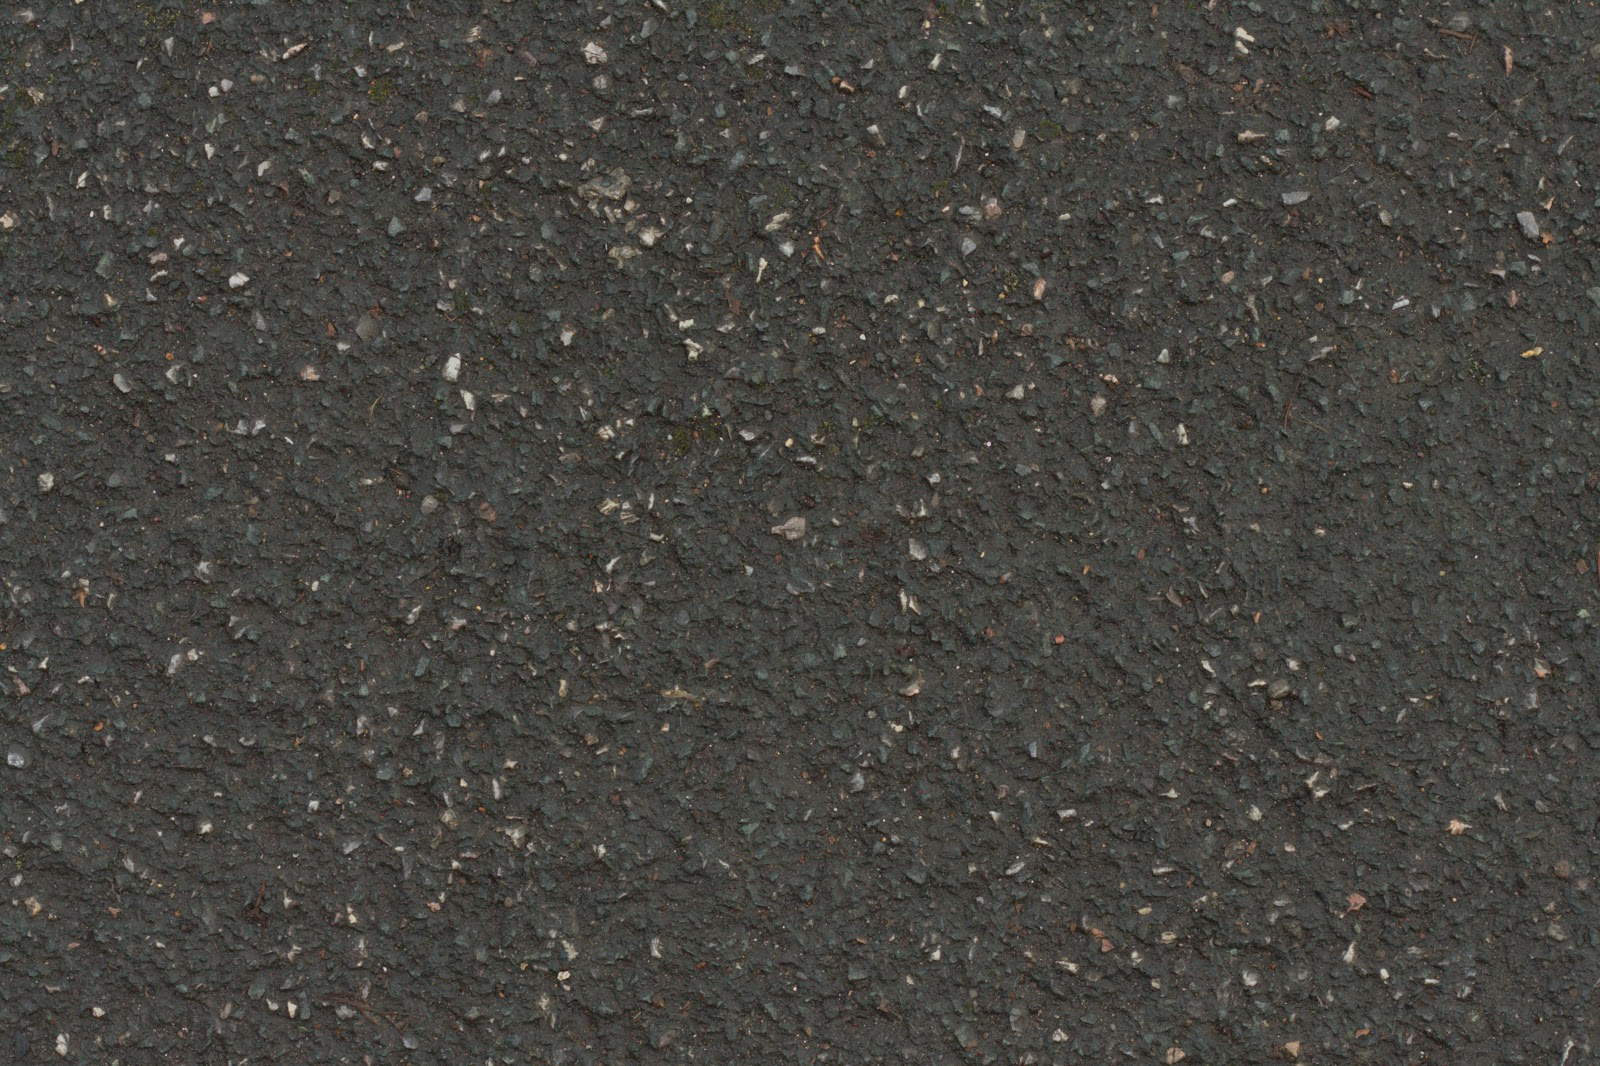 Asphalt road wet texture 4770x3178